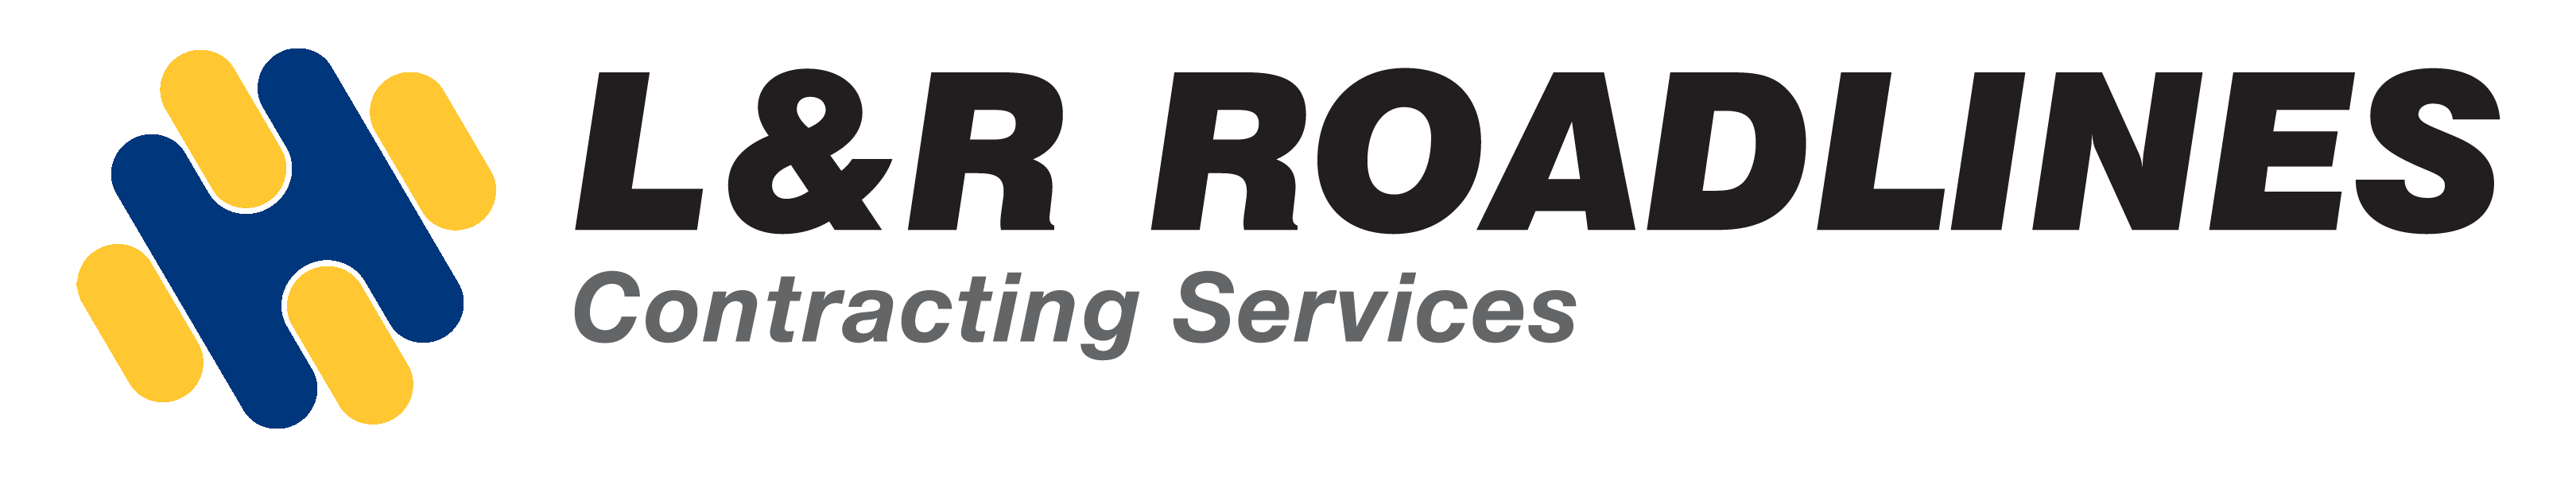 L&R Roadlines- Road Marking and Contracting Services